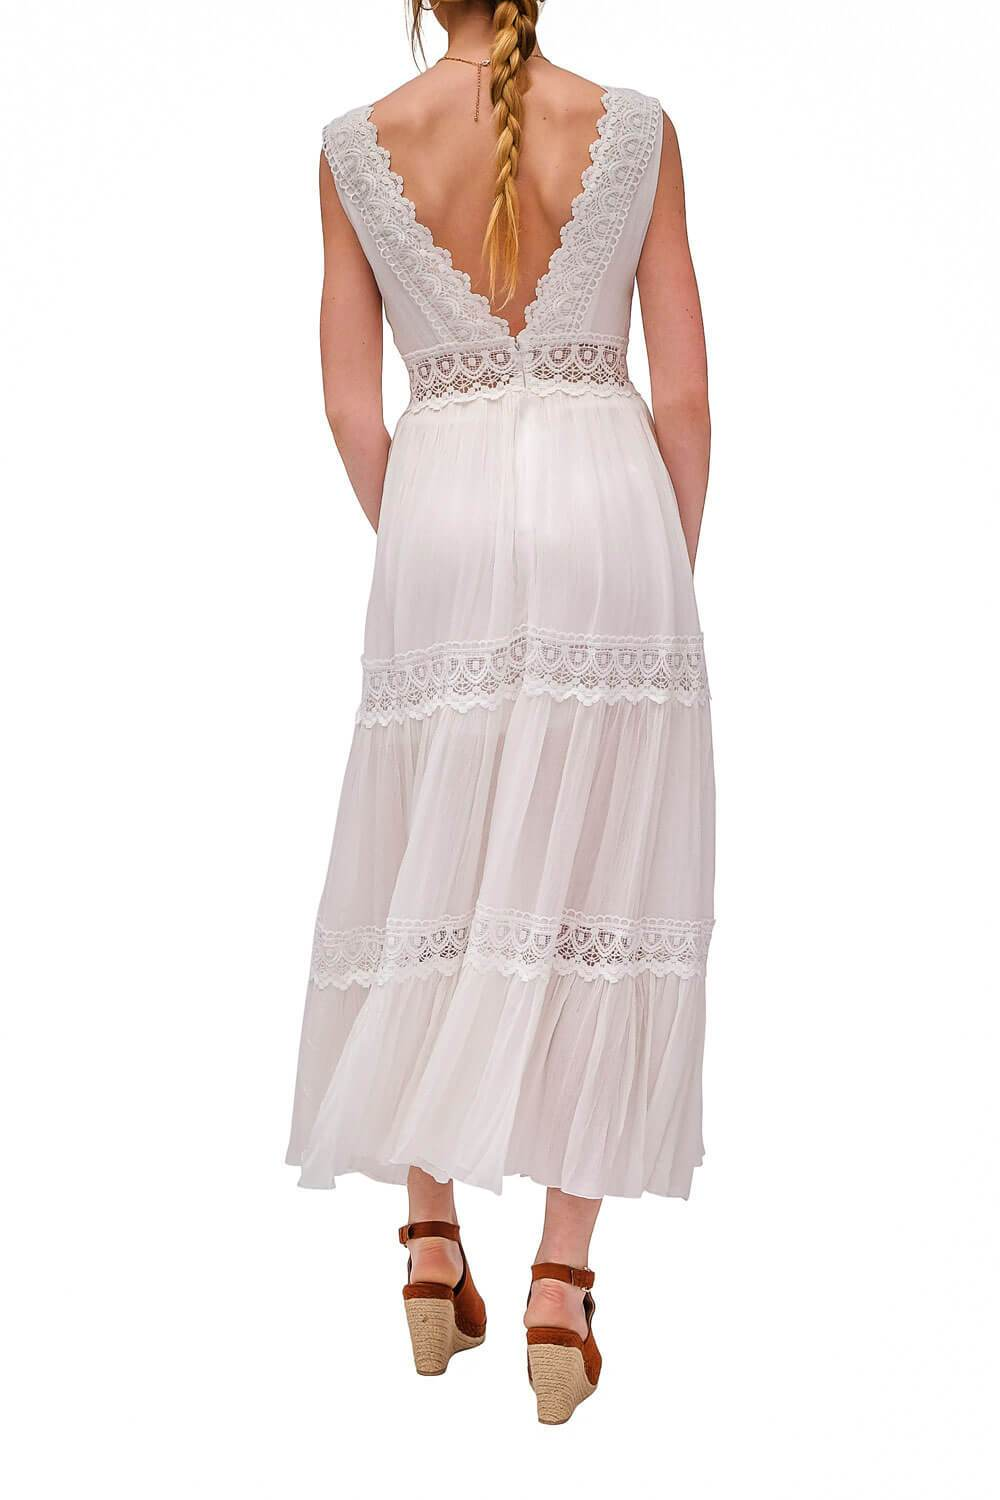 Palm Springs Lace Dress White back - MILK MONEY